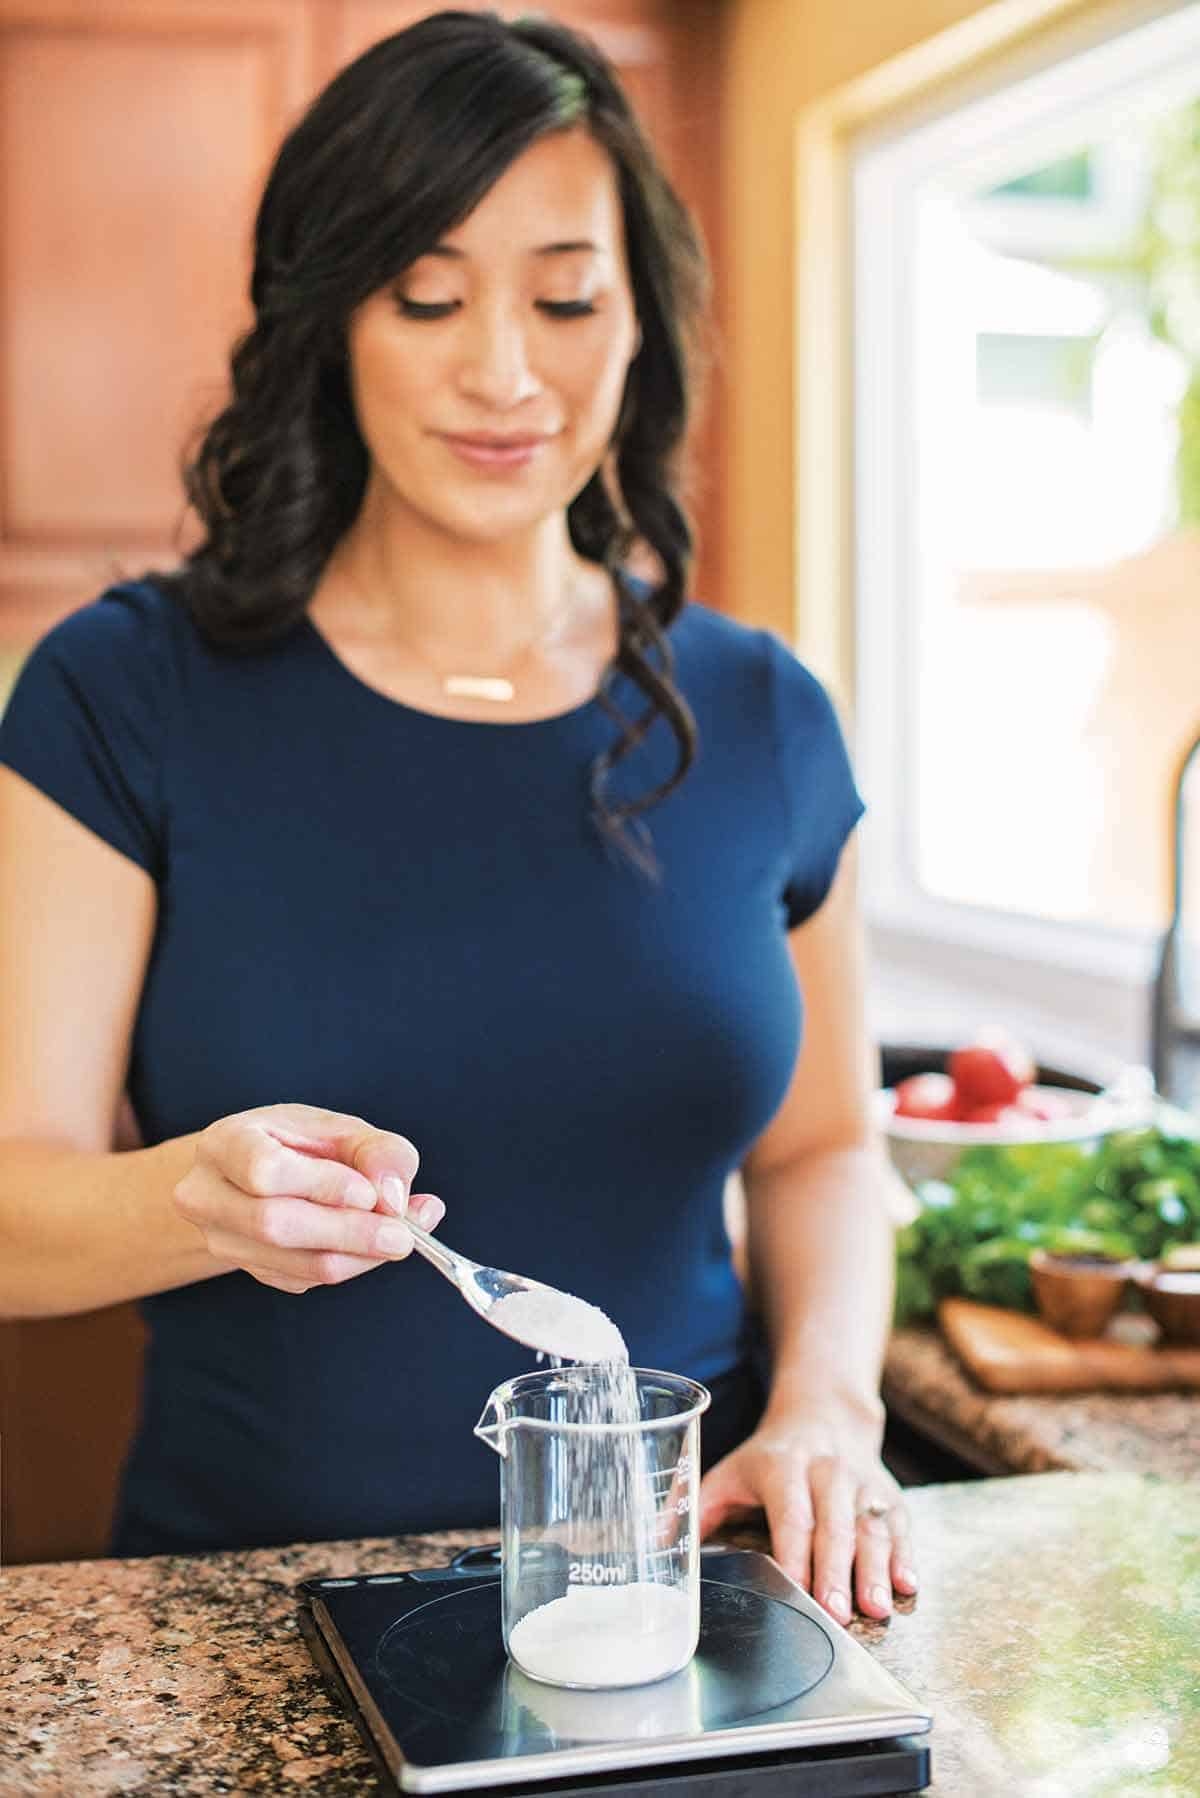 My goal is to help you build confidence in the kitchen through science. Every recipe I publish has cooking tips that take the guesswork and mystery out of the process. #cookingtips #cooking101 #culinary